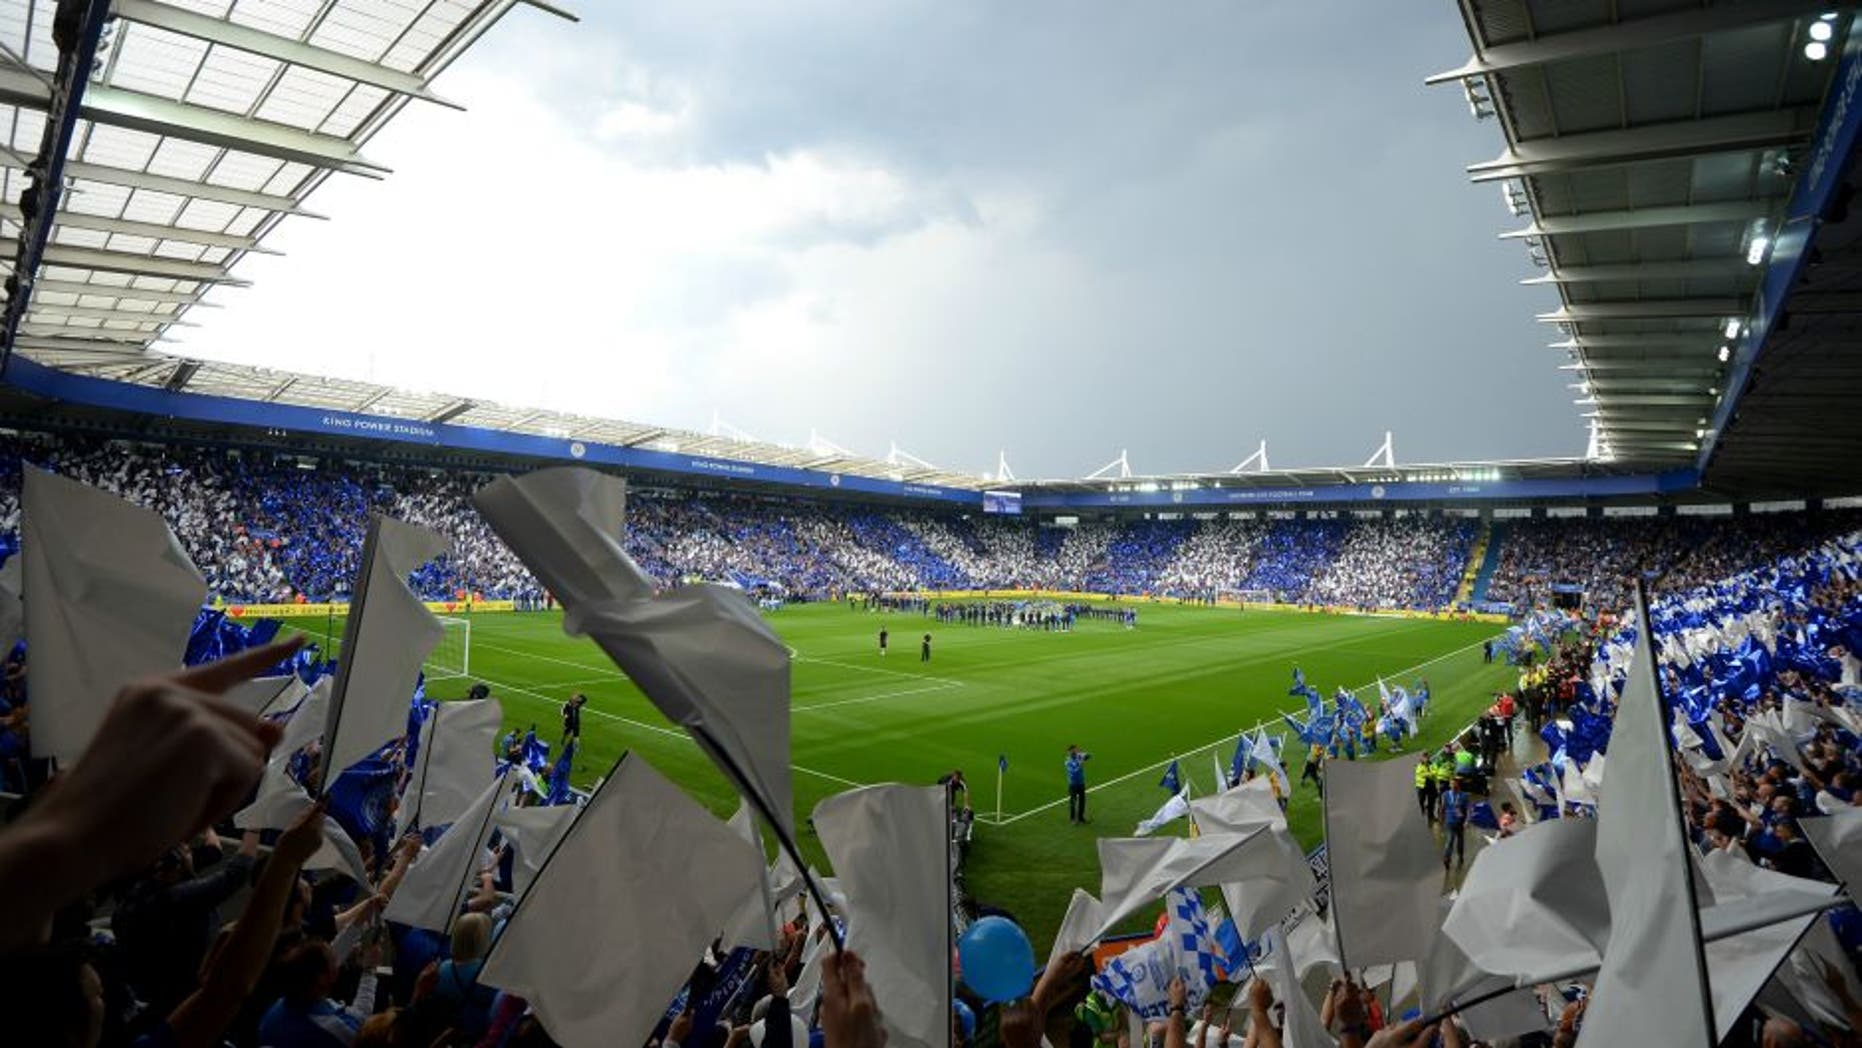 xxxx during the Barclays Premier League match between Leicester City and Everton at The King Power Stadium on May 7, 2016 in Leicester, United Kingdom.